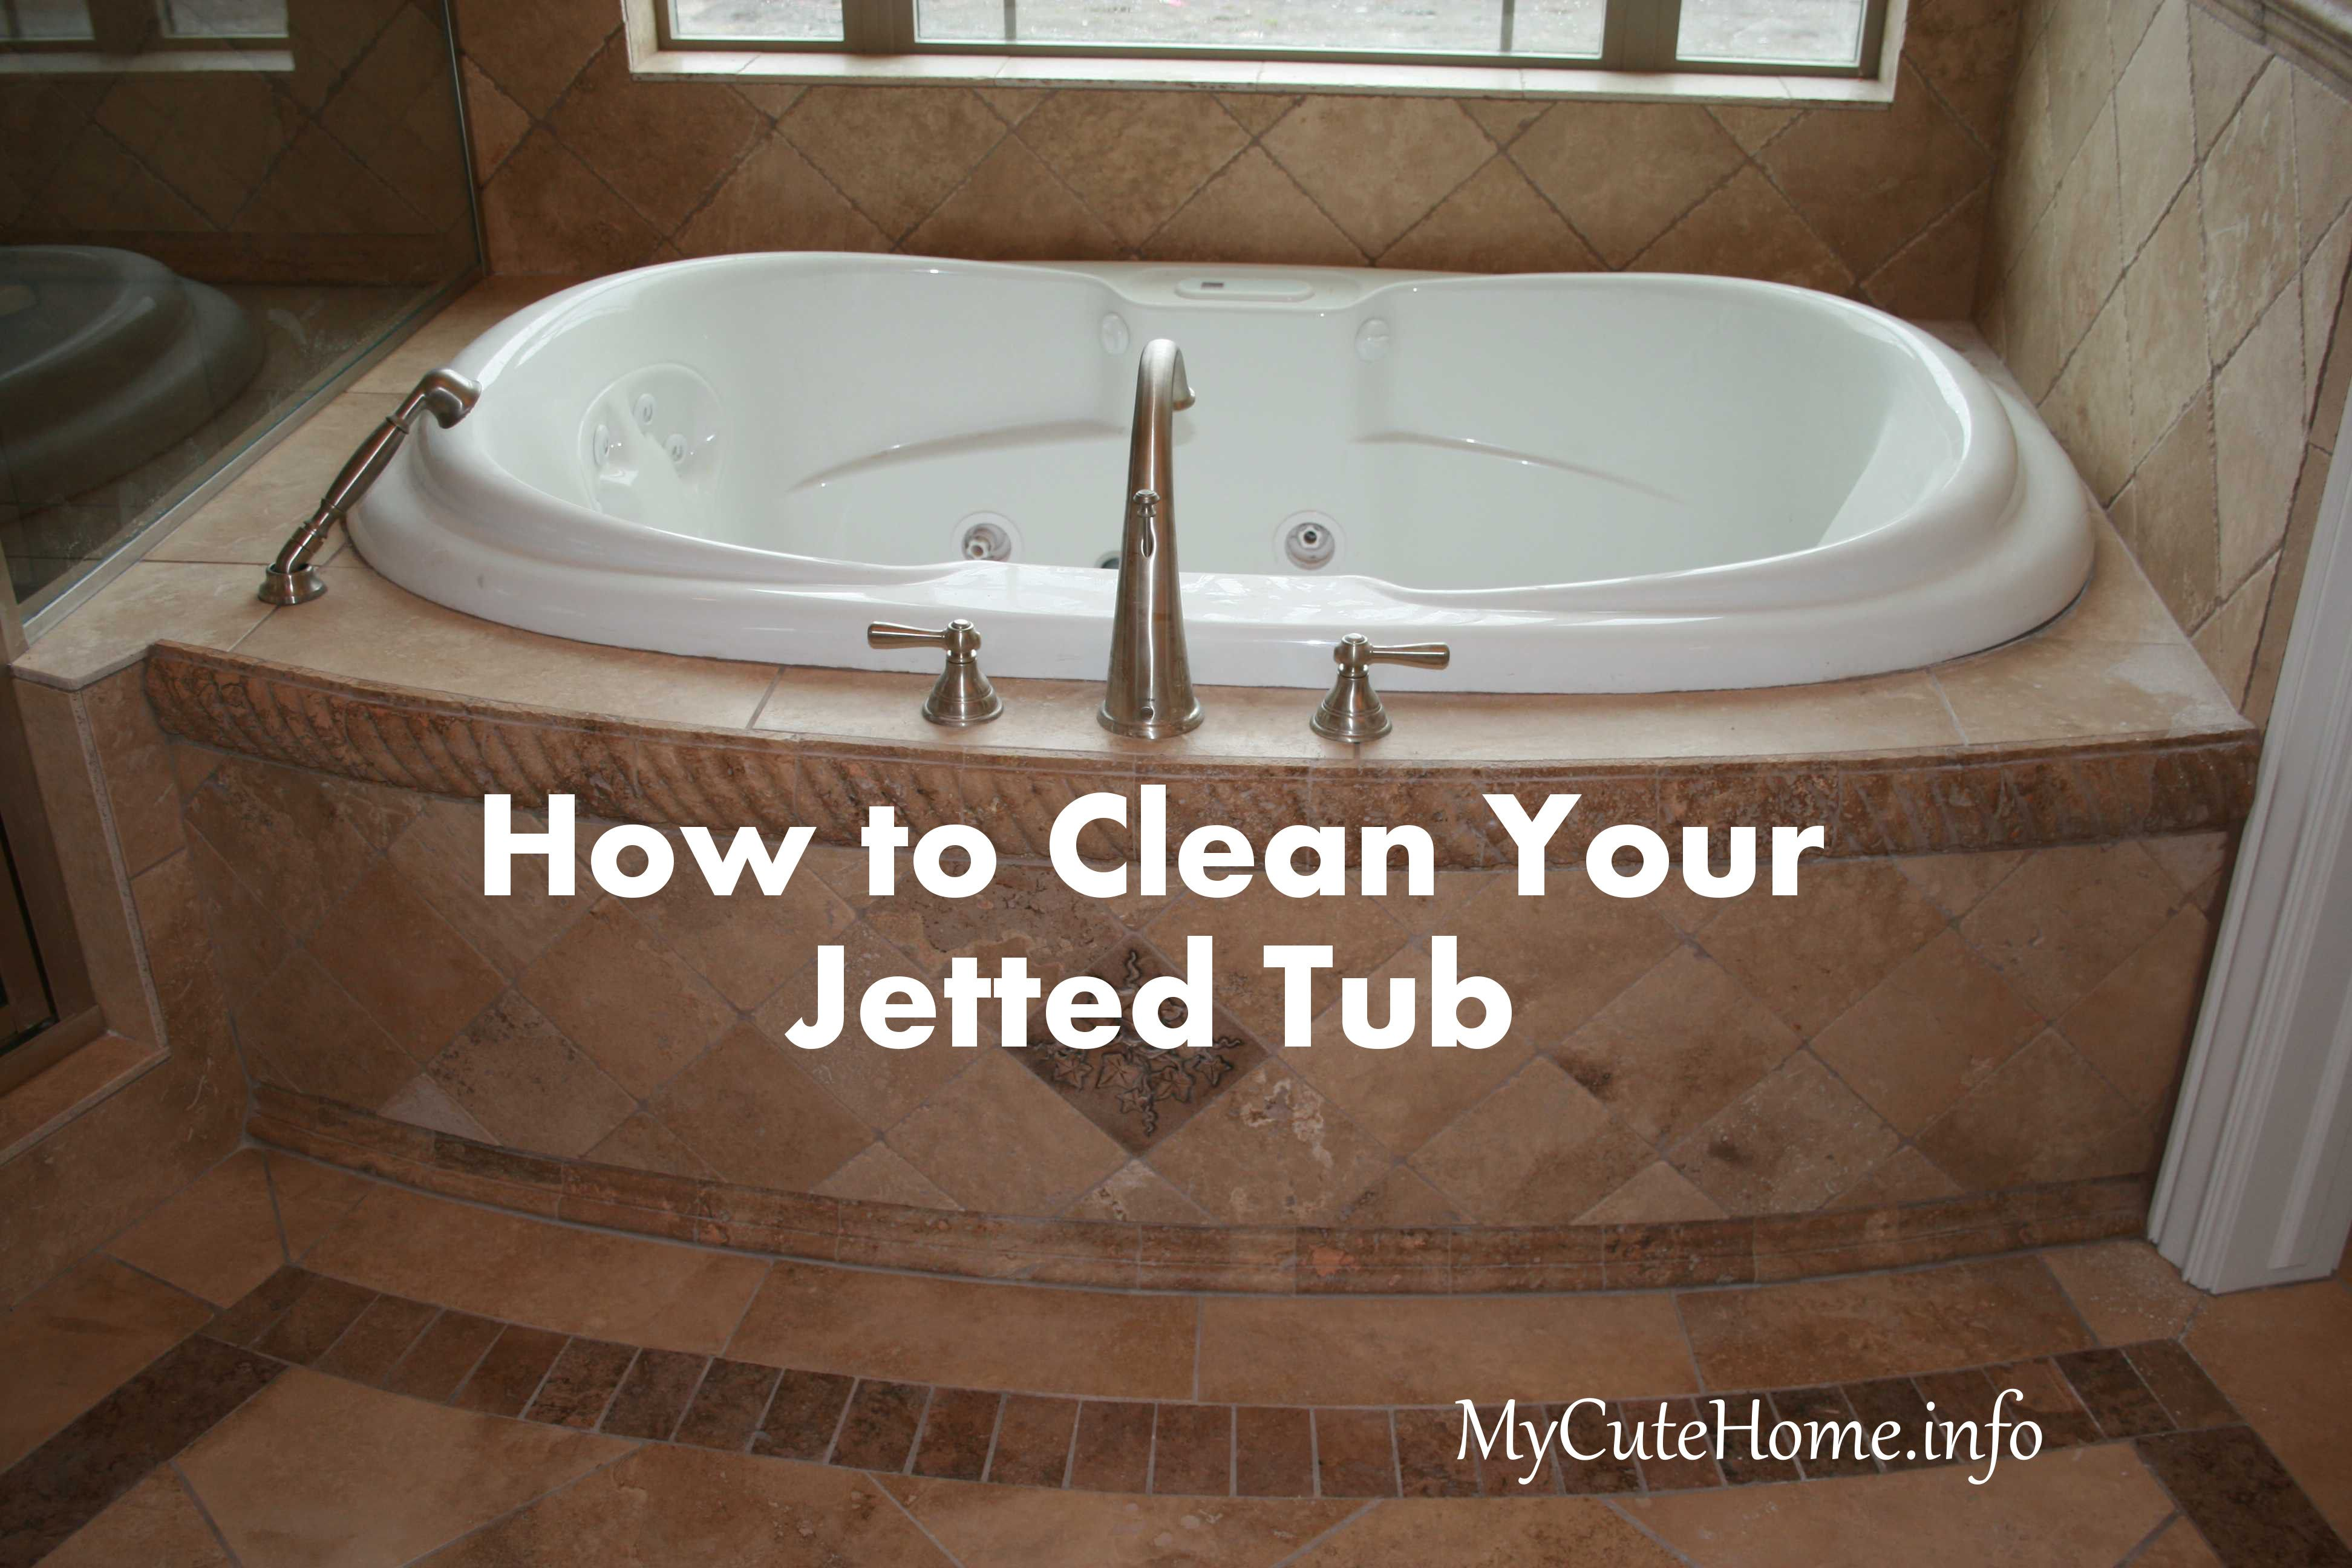 How to Clean a Jetted Tub | Home Decor | Pinterest | Jetted tub ...